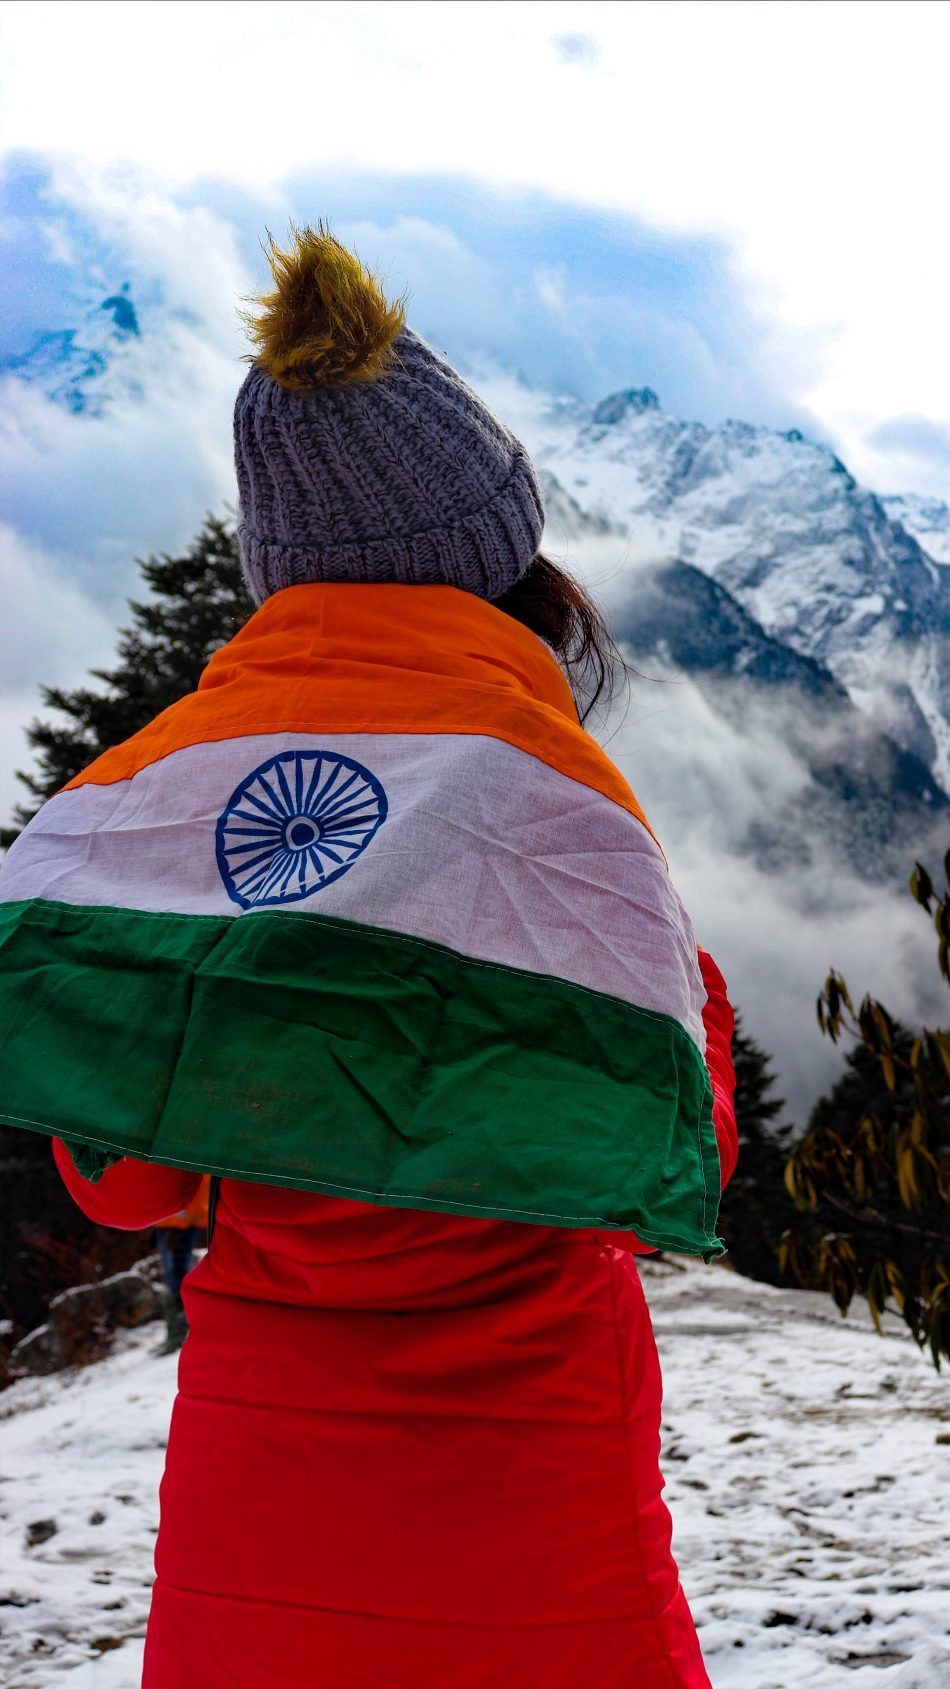 Girl Indian Flag Snow Mountains Indian Flag Wallpaper Indian Flag Indian Flag Images